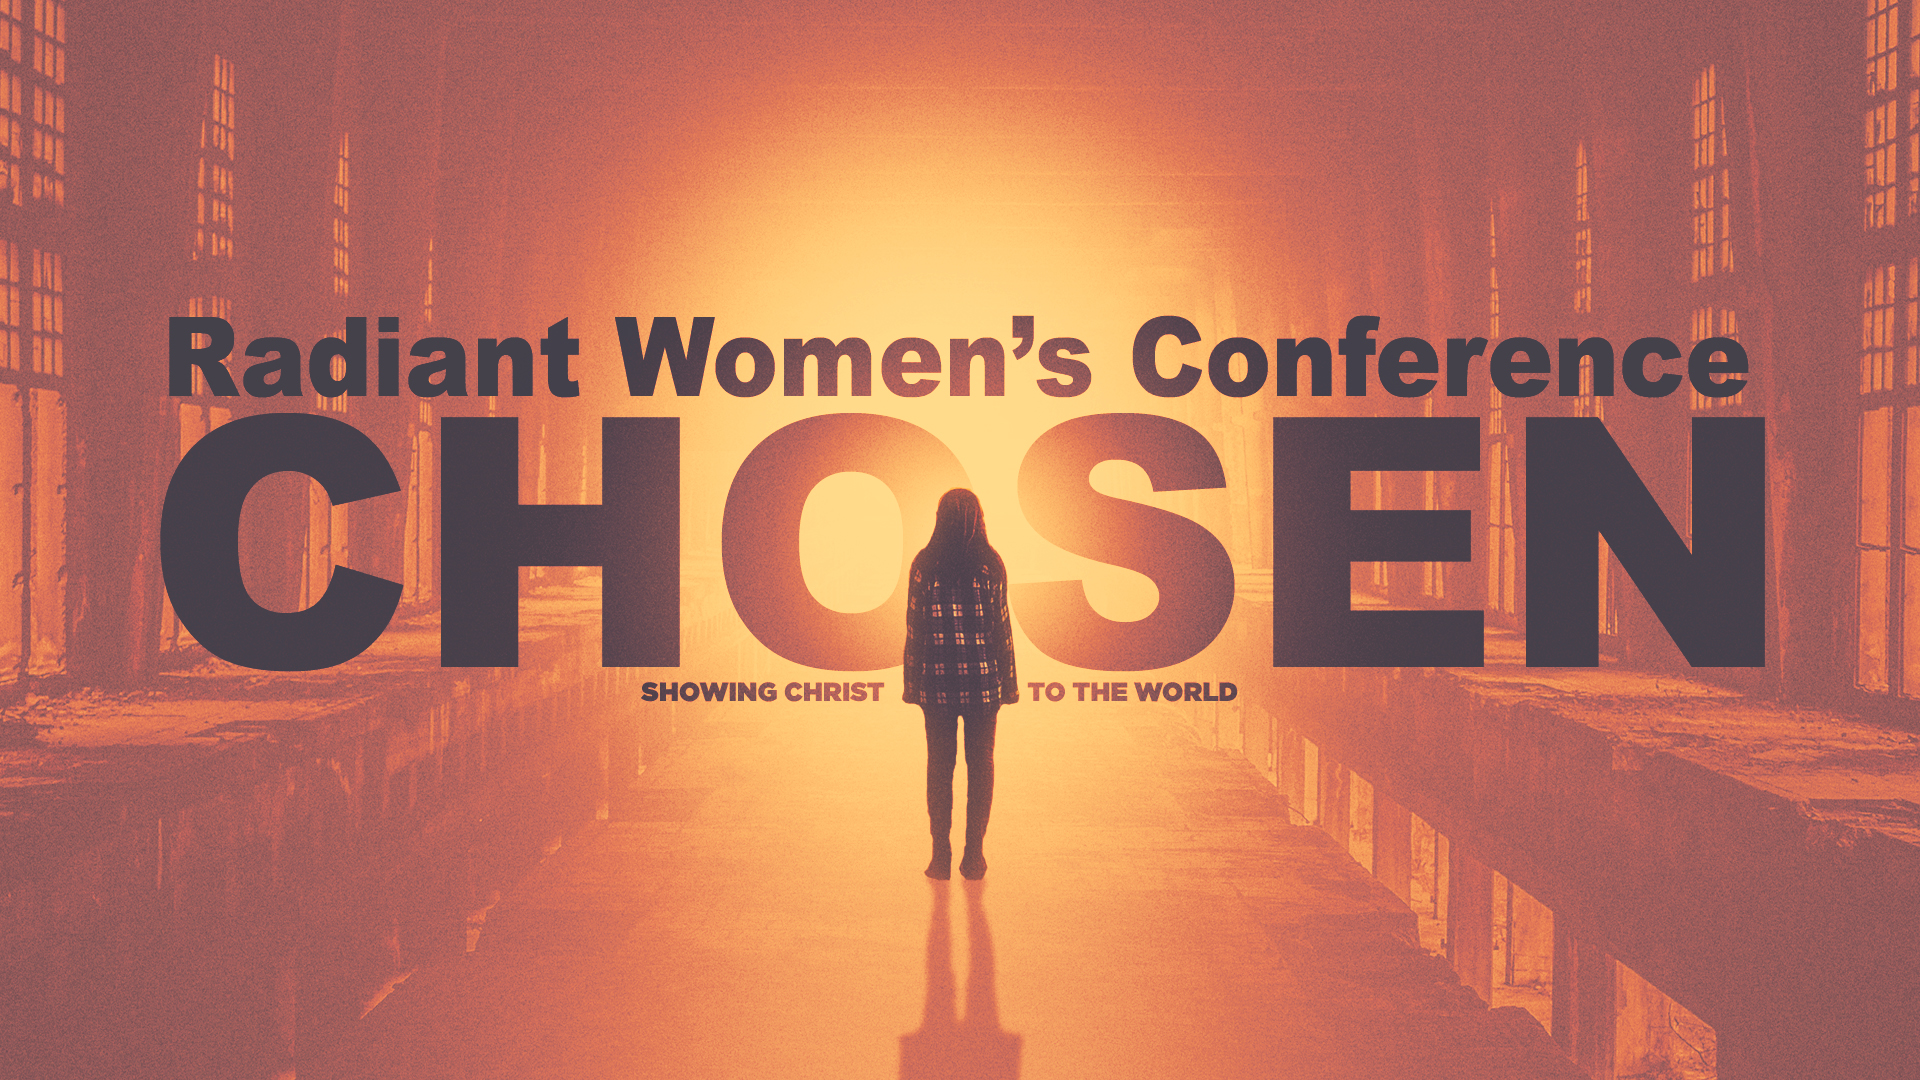 Radiant Women's Conference.jpg